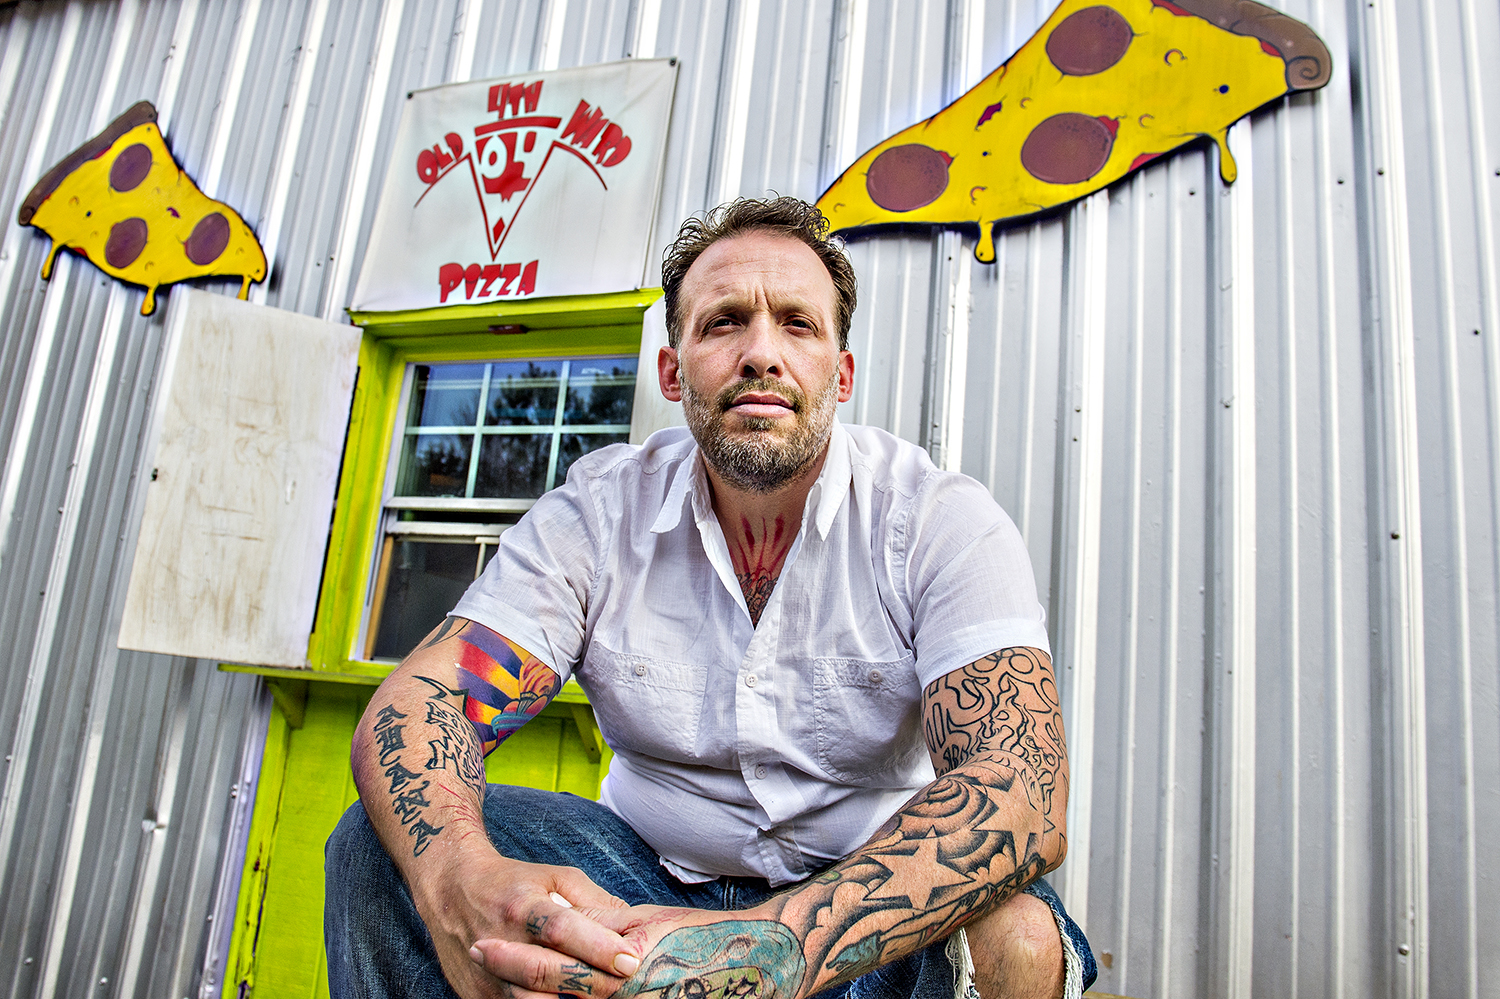 Anthony Spina at O4W Pizza's old Irwin Street Market location.